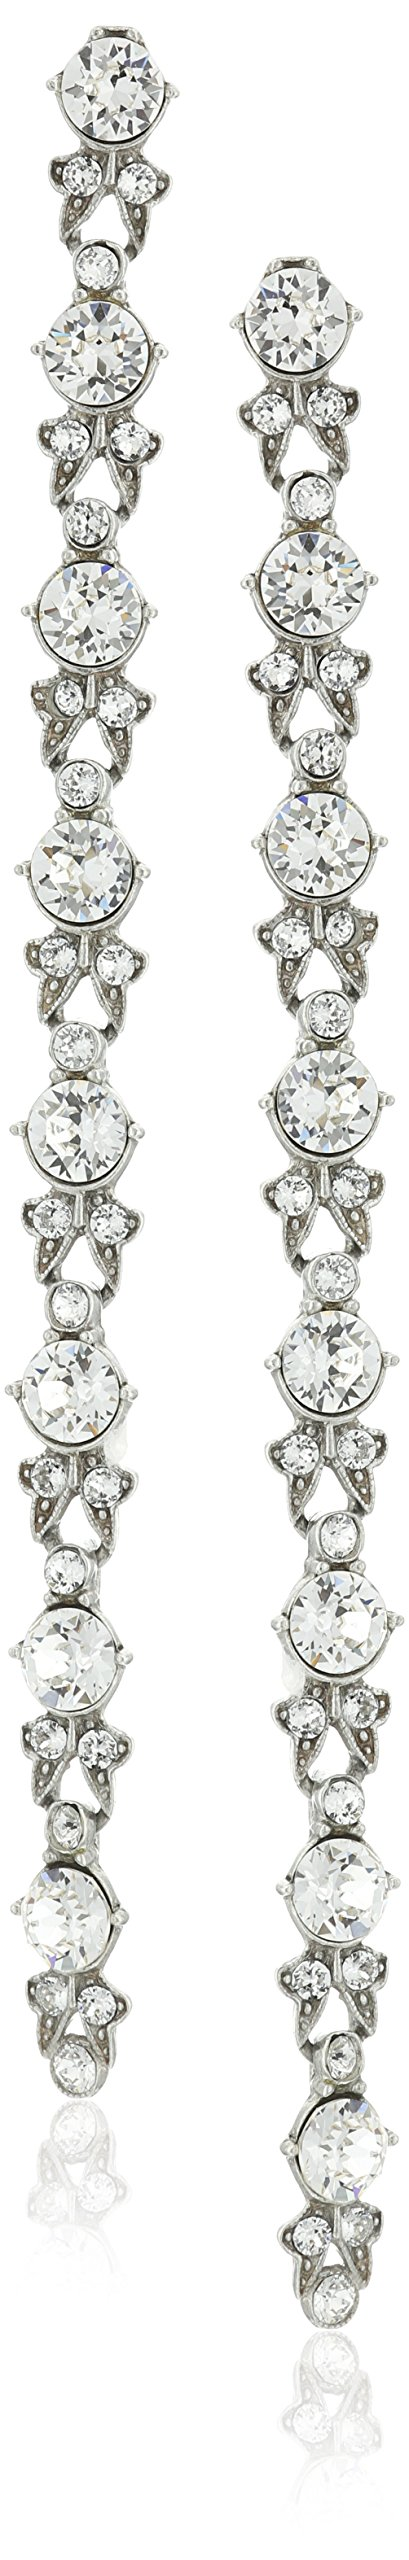 Ben-Amun Jewelry Swarovski Crystal Round Cut Long Drop Earrings for Bridal Wedding Anniversary